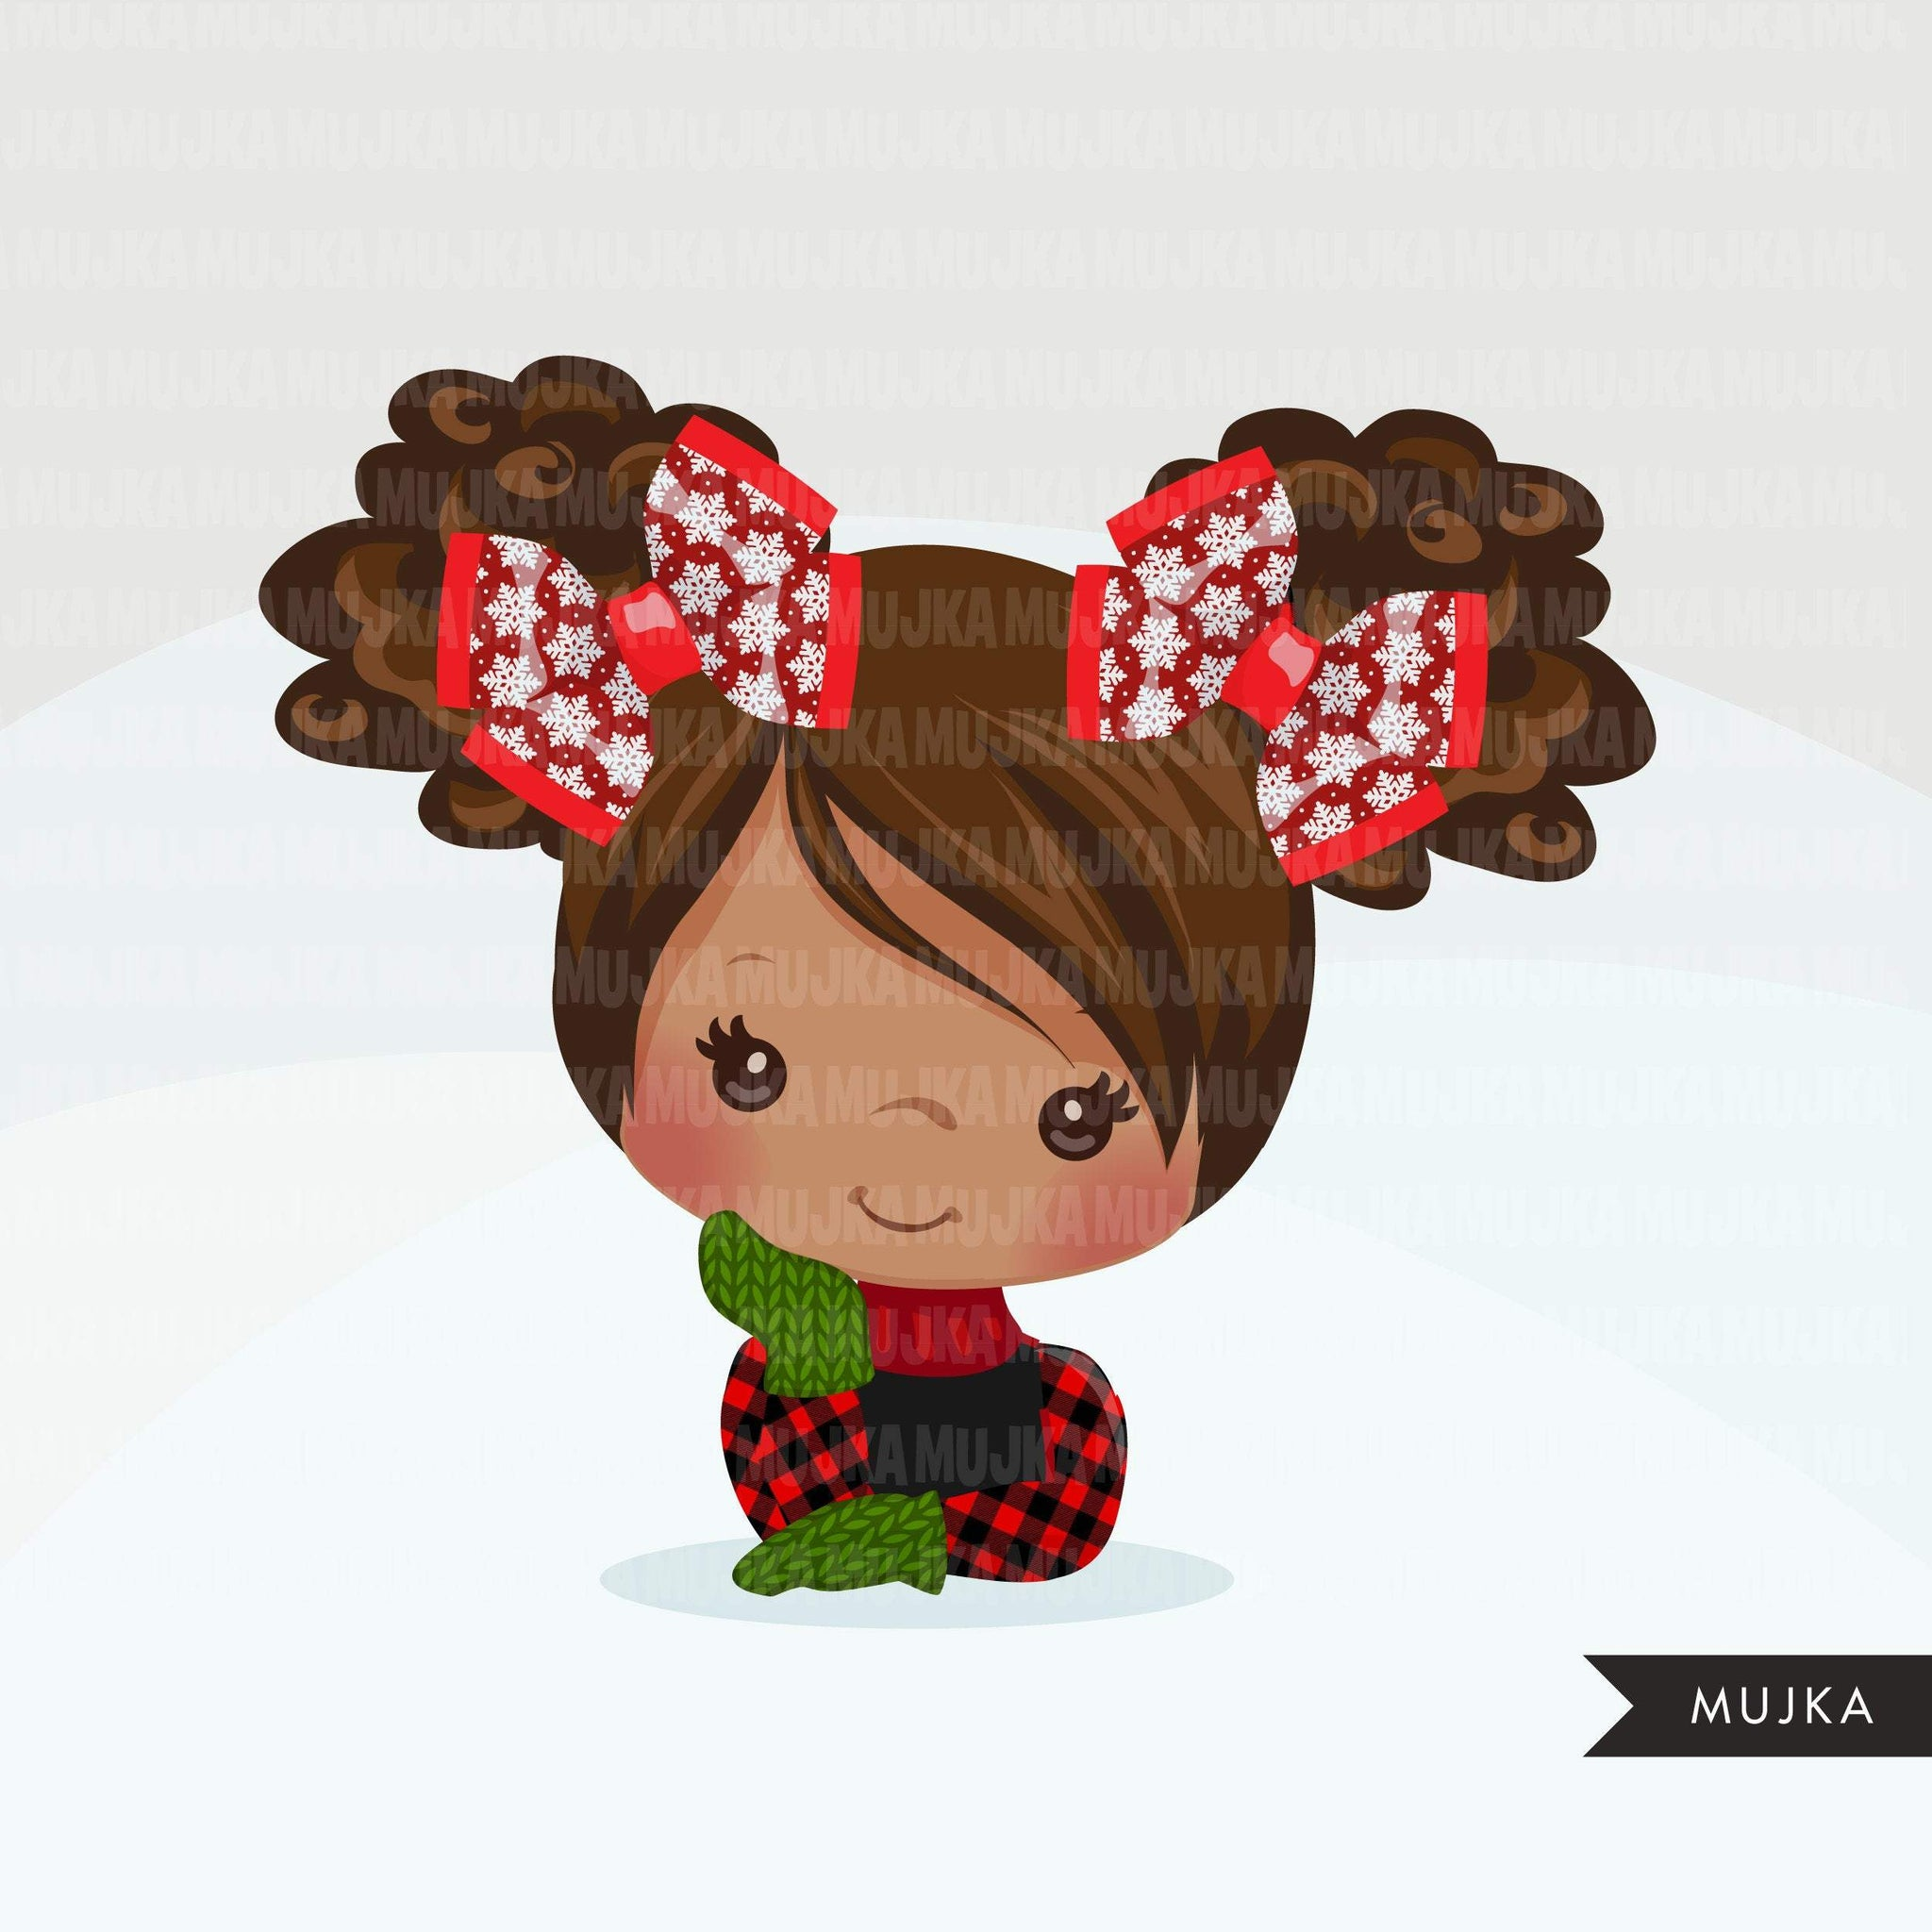 Christmas Hair bows and ribbons clipart, Hair tie, polka dots, plaid ribbon graphics, commercial use hair accessories, hair band